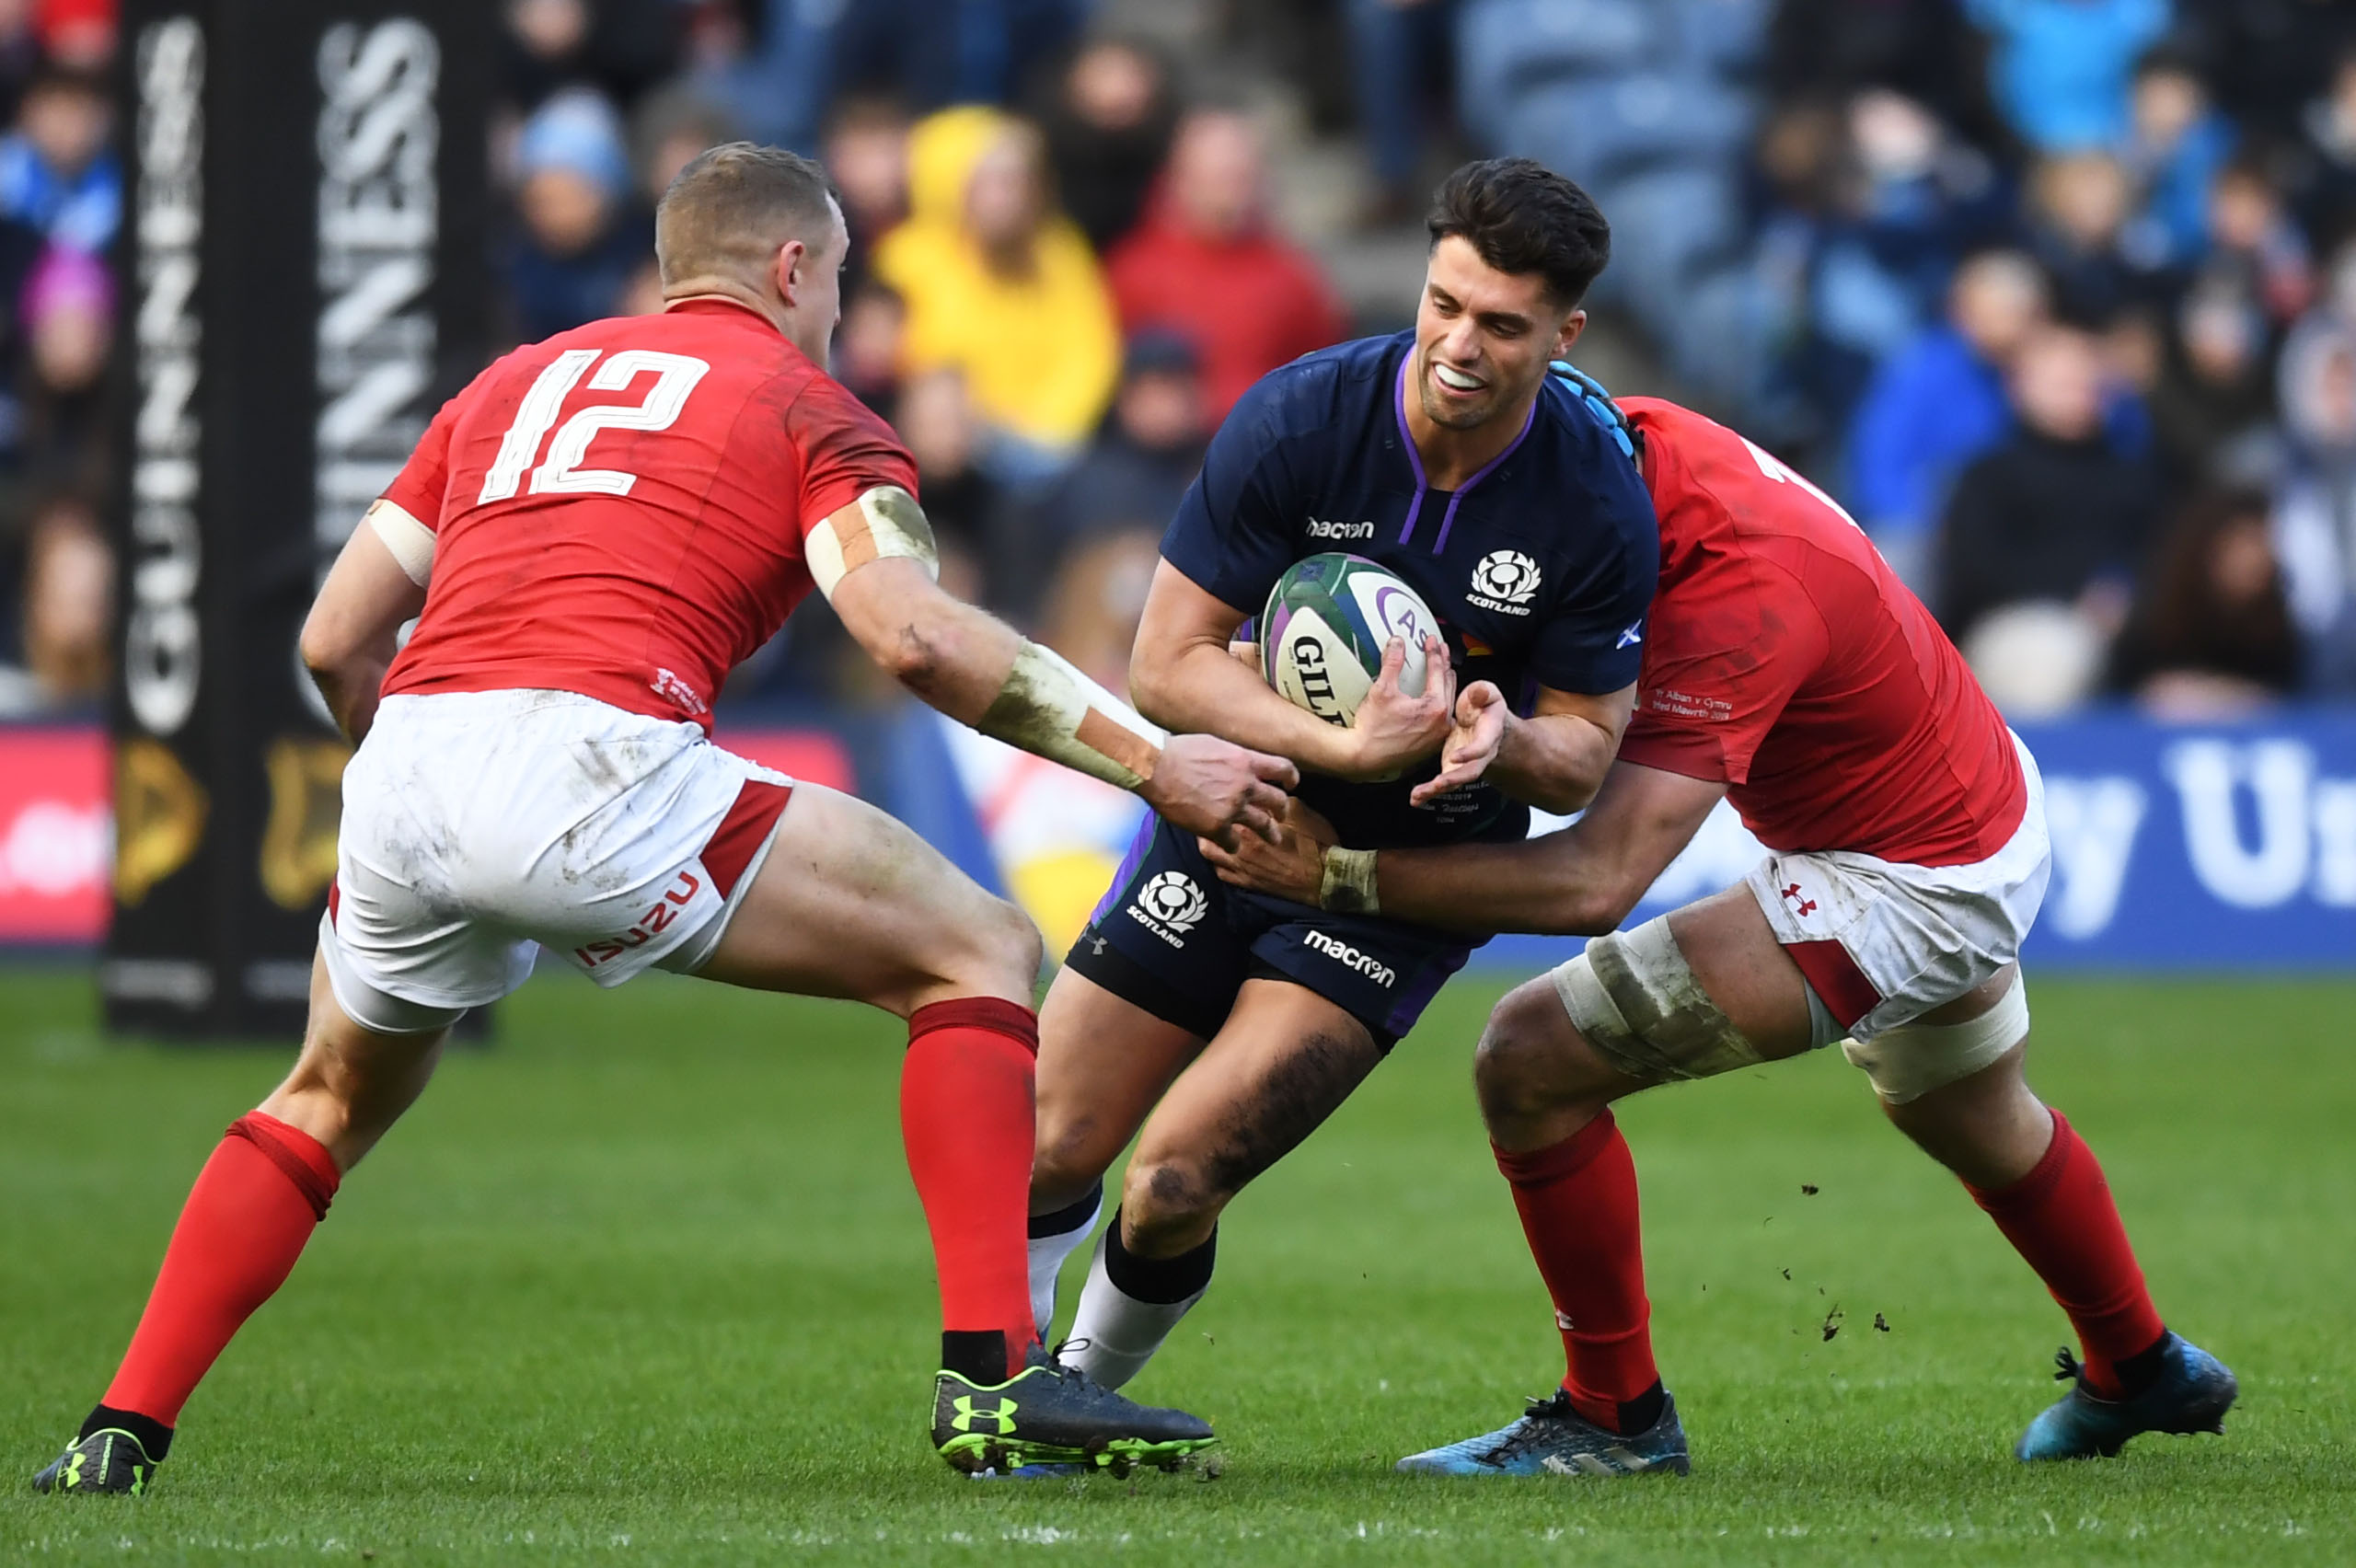 Adam Hastings tries to breach the Welsh defence.